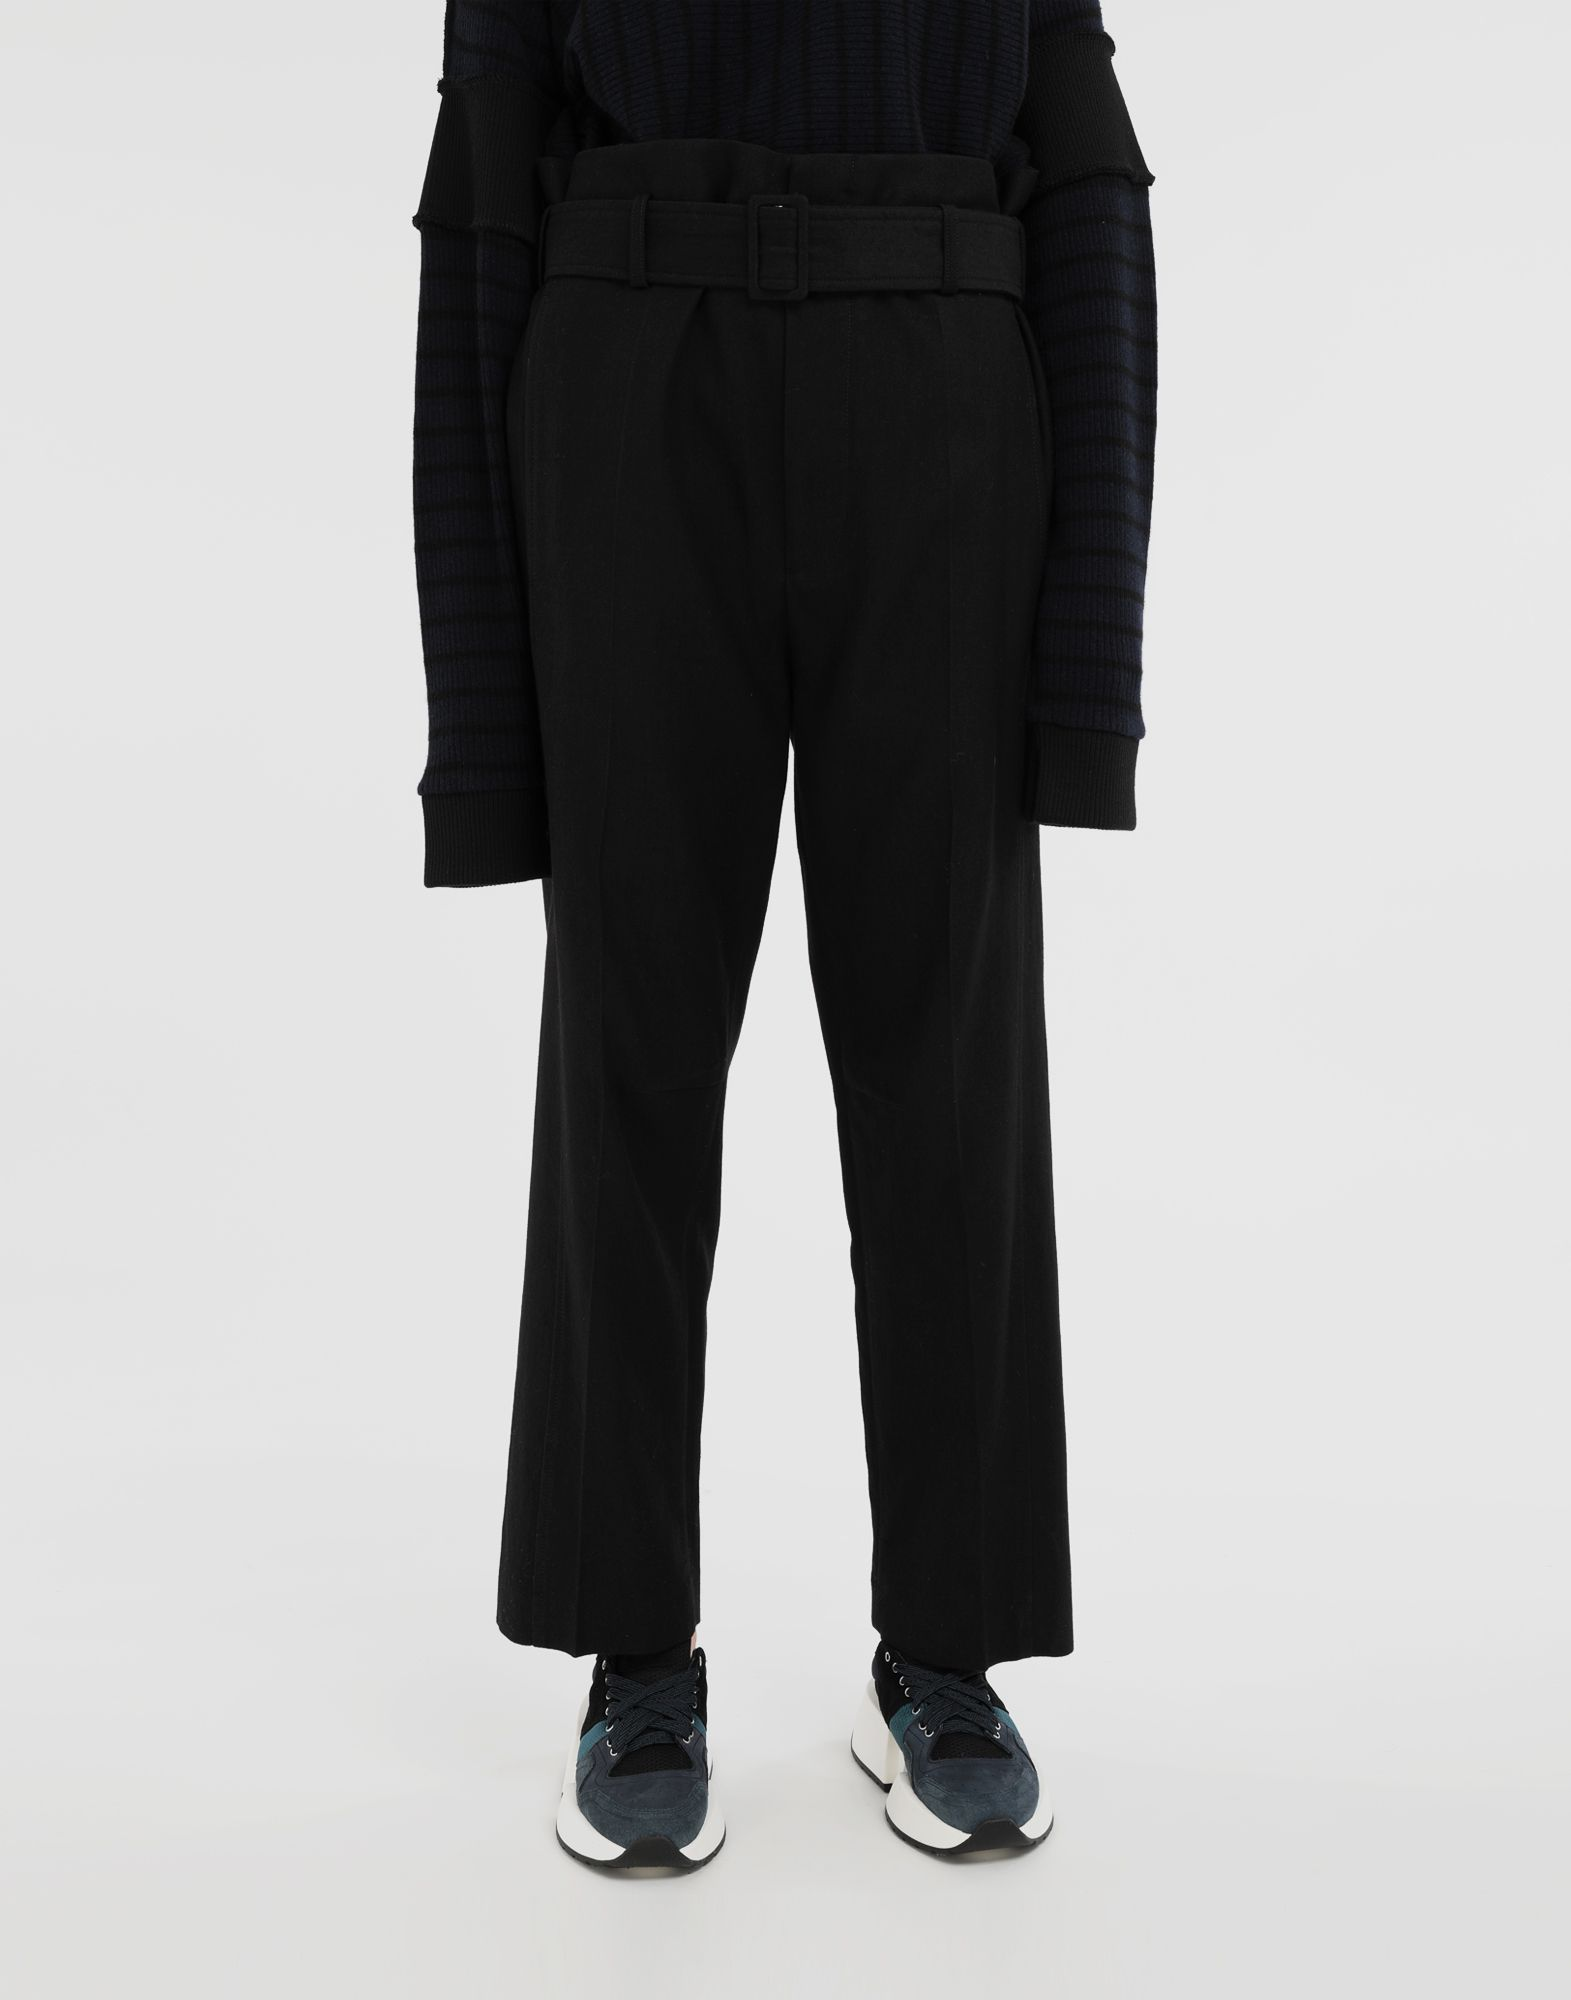 MM6 MAISON MARGIELA Tailored trousers Casual pants Woman r